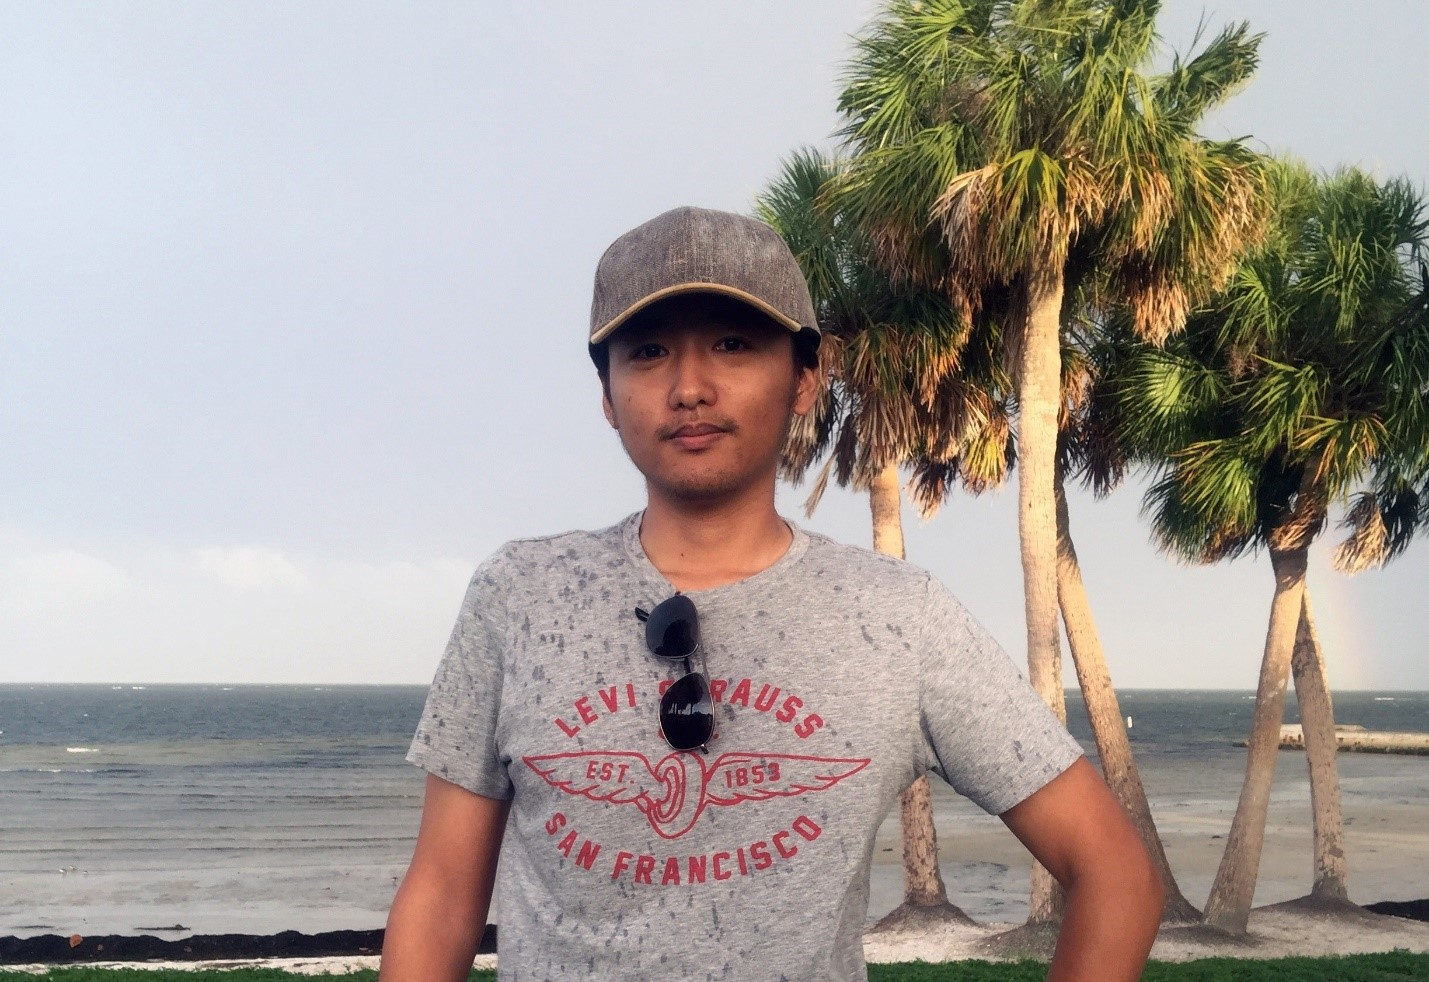 Chao Liu, lead author on the paper, received a NASA Earth and Space Science Fellowship allowing him to study global ocean vertical salt transport using a state-of-the-art ocean synthesis product.